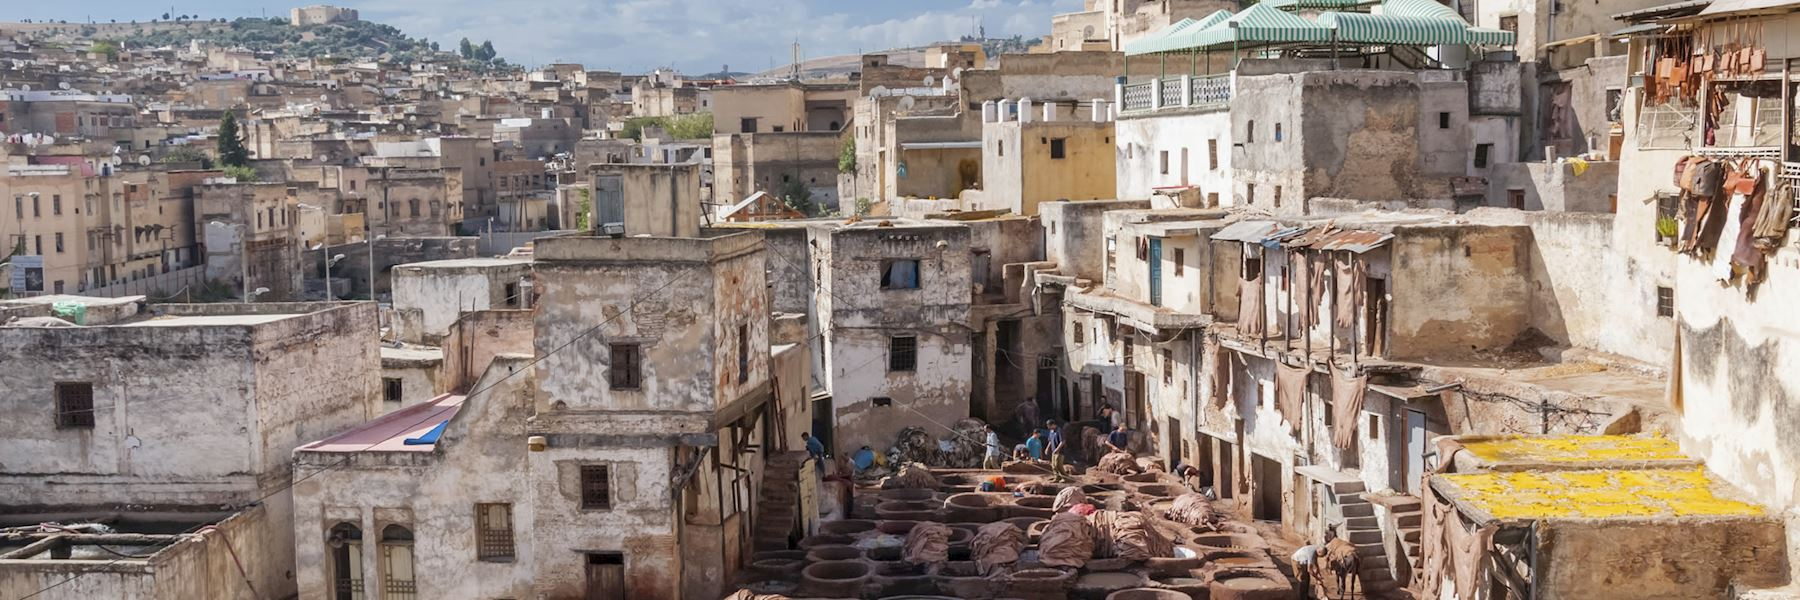 Visit Fez on a trip to Morocco   Audley Travel